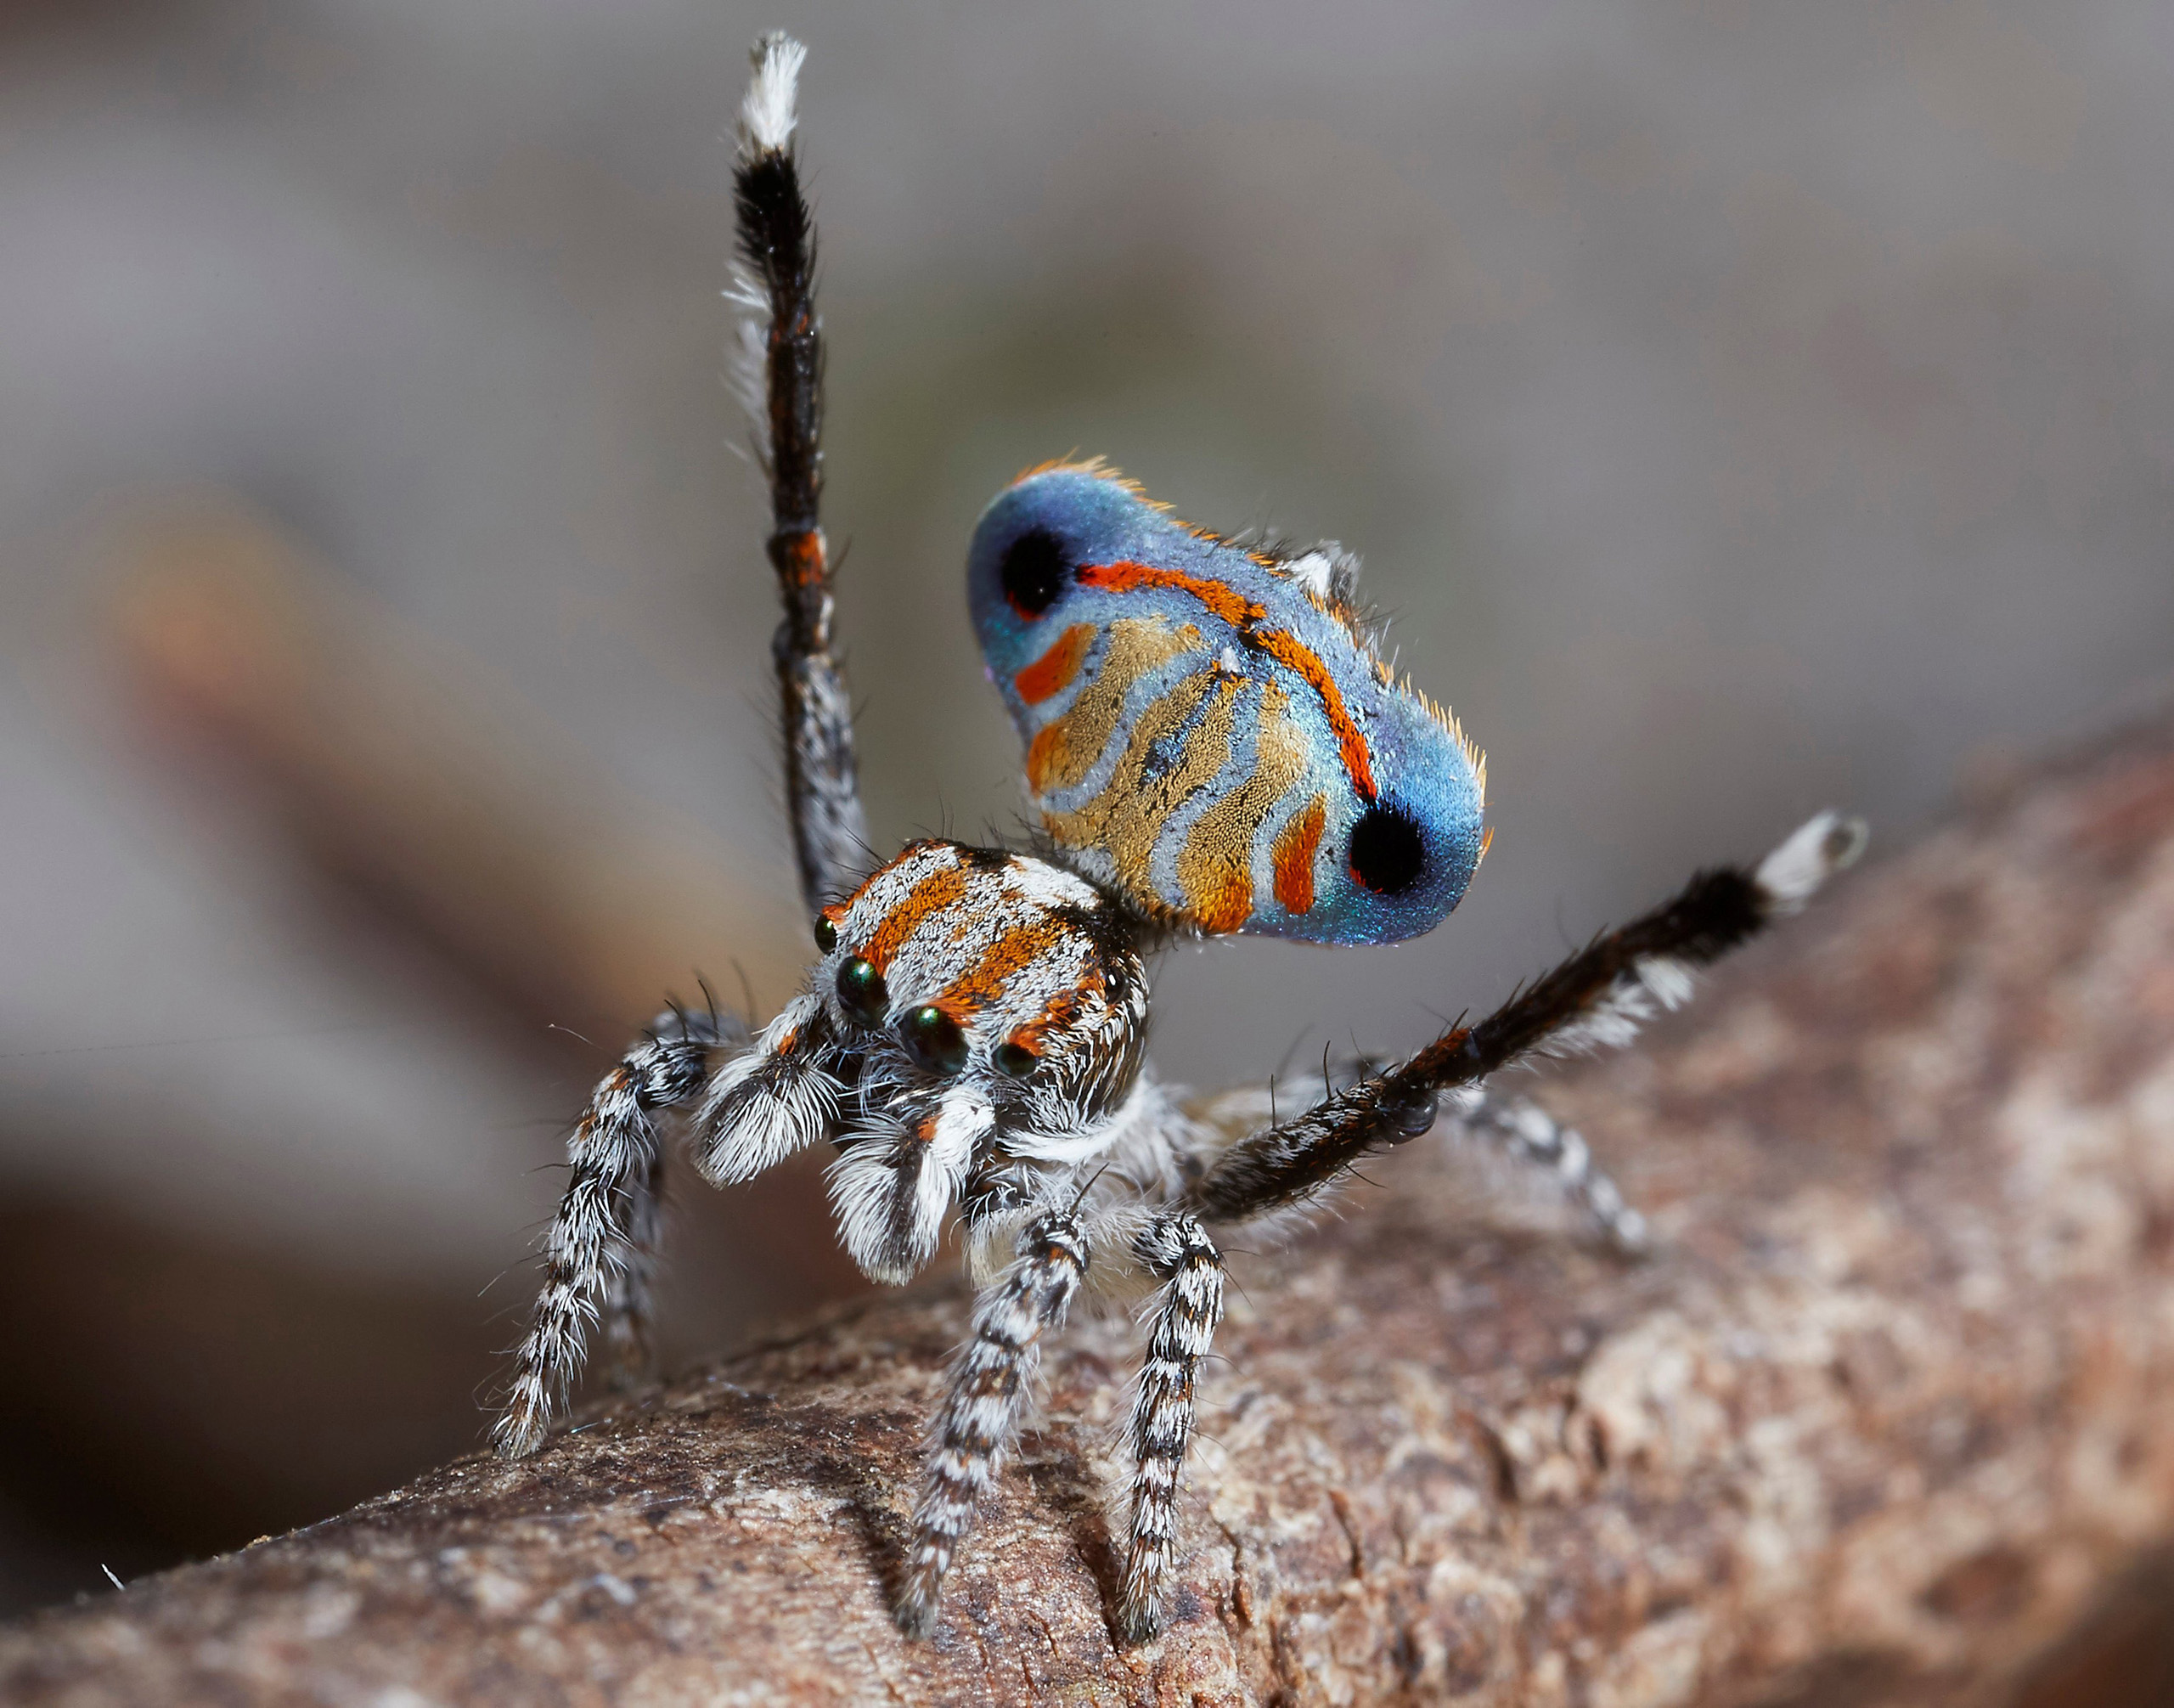 Maratus Australis was found at a number of different locations in Western Australia. While very similar to another species, Maratus Tasmanicus, it is different enough to be considered separate.